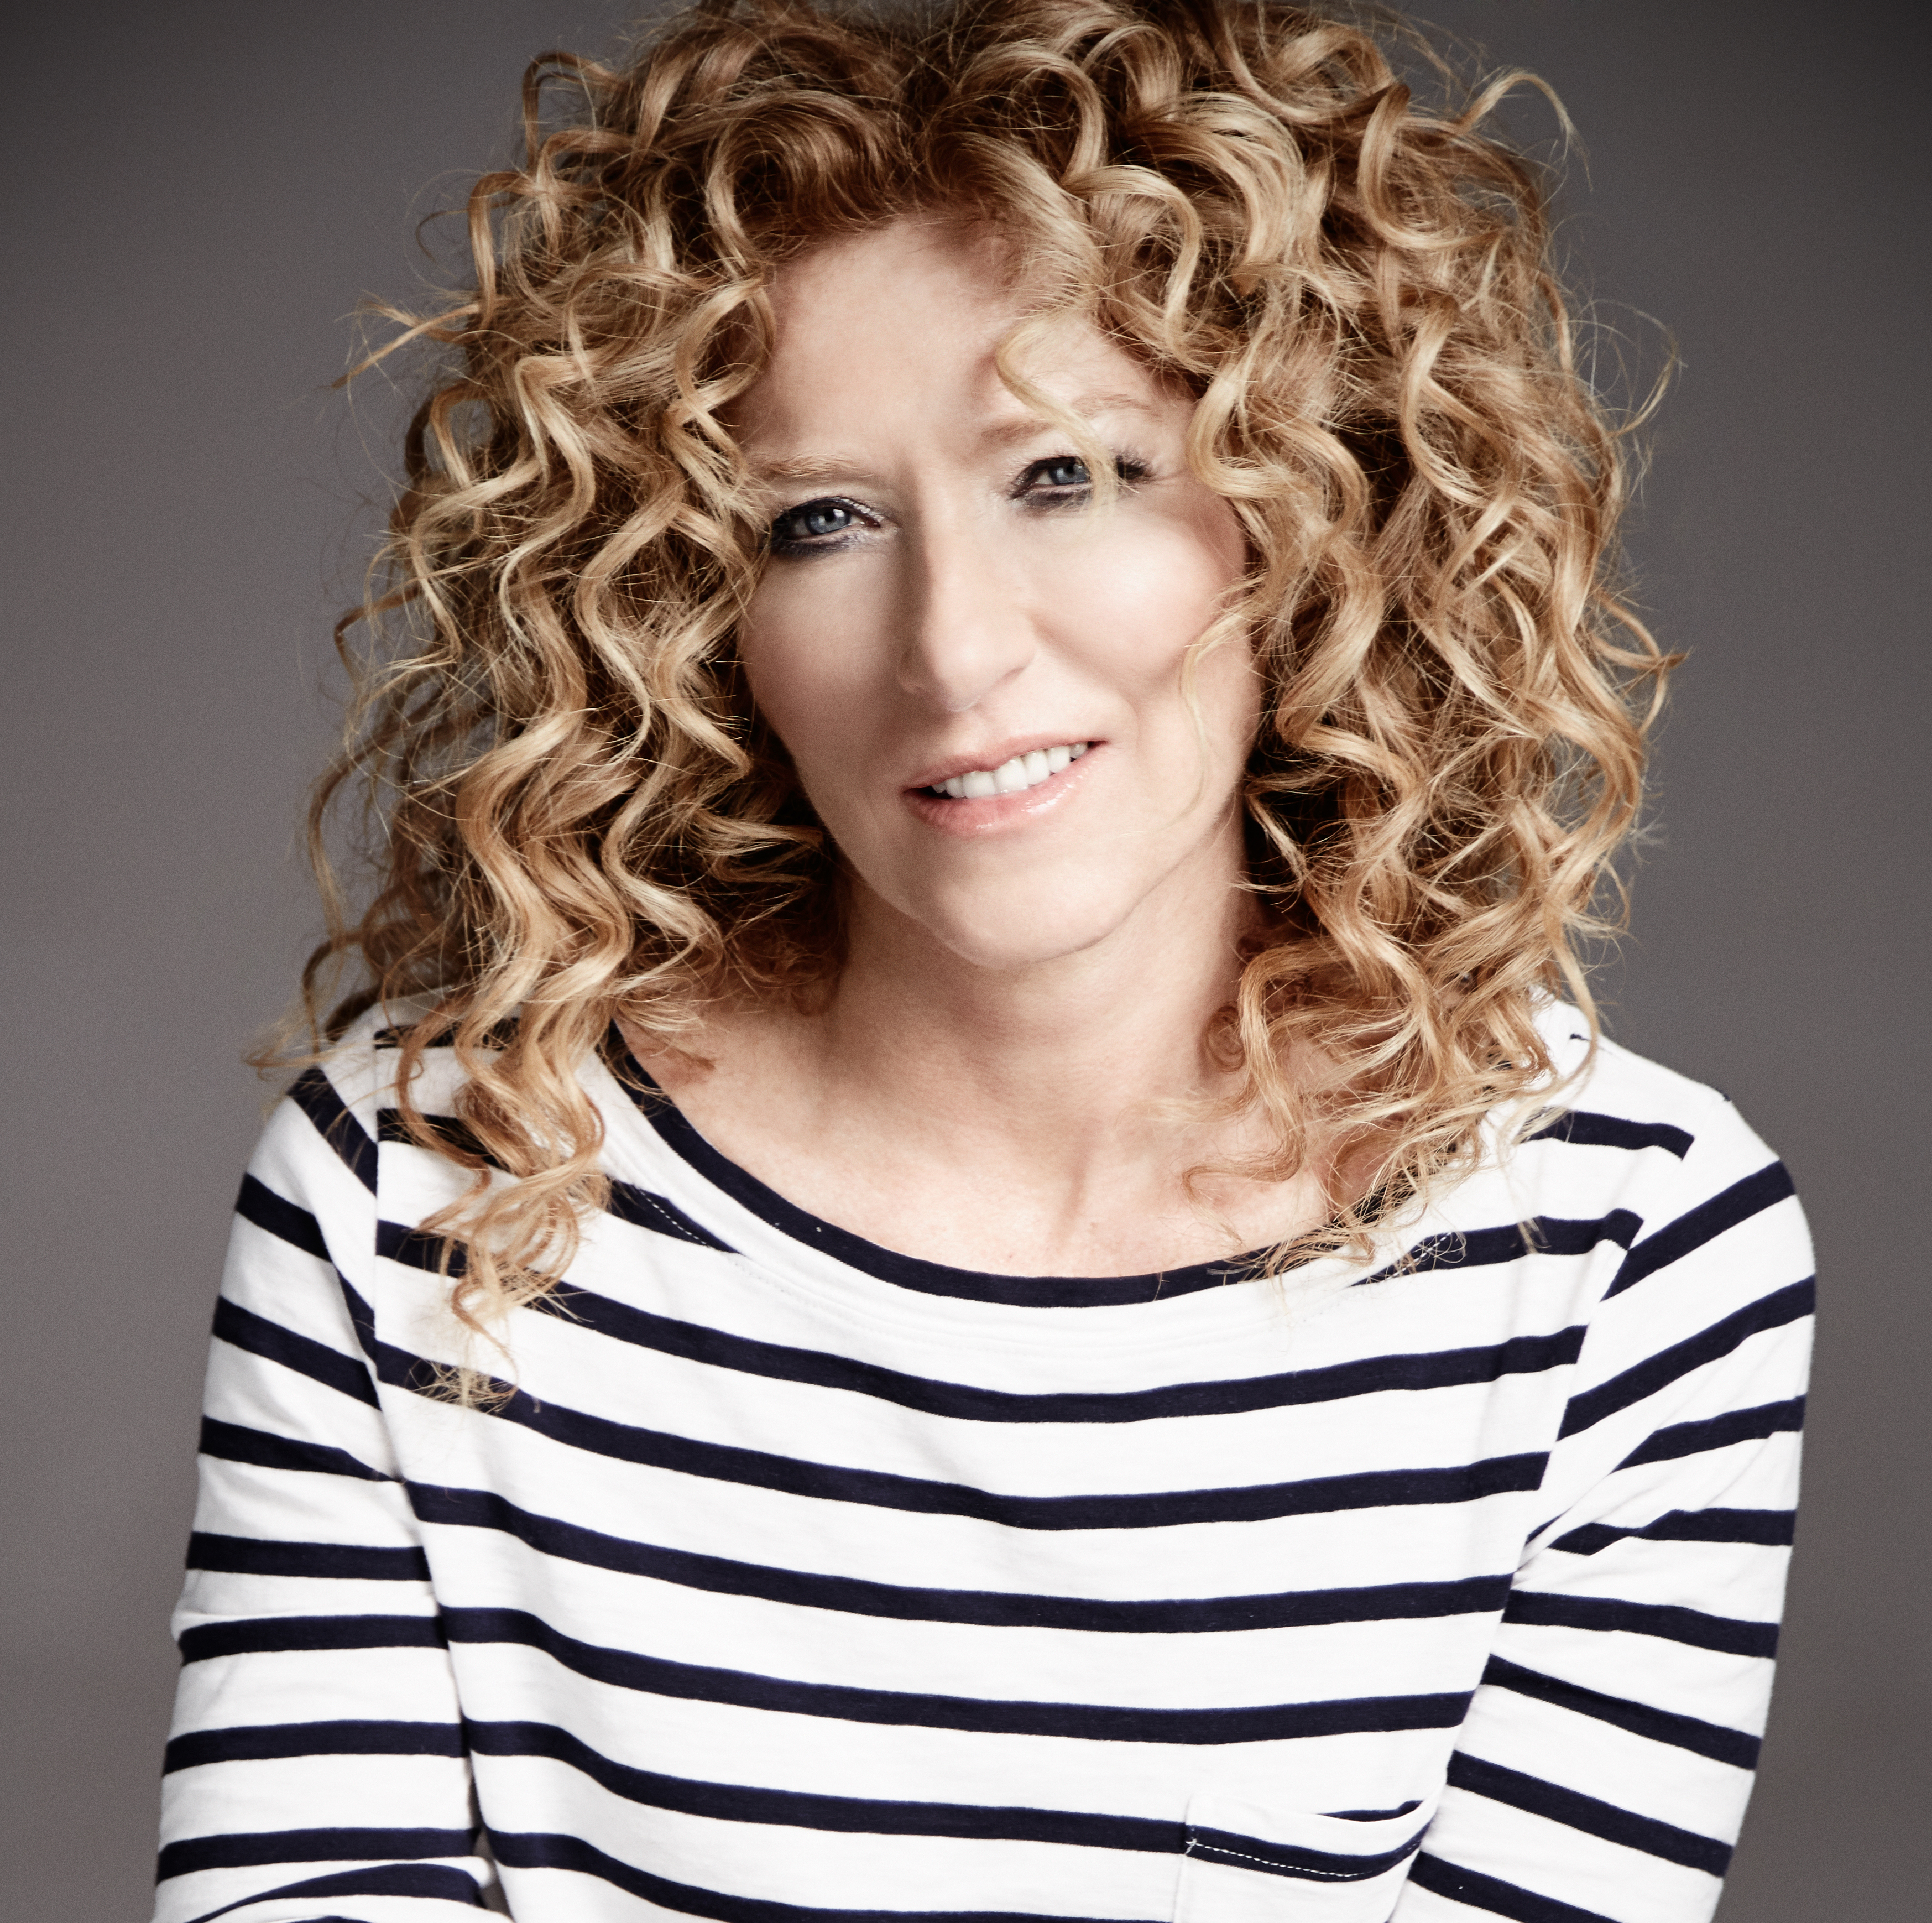 Kelly Hoppen: From Formula 1 batchelor pads to owning the colour taupe